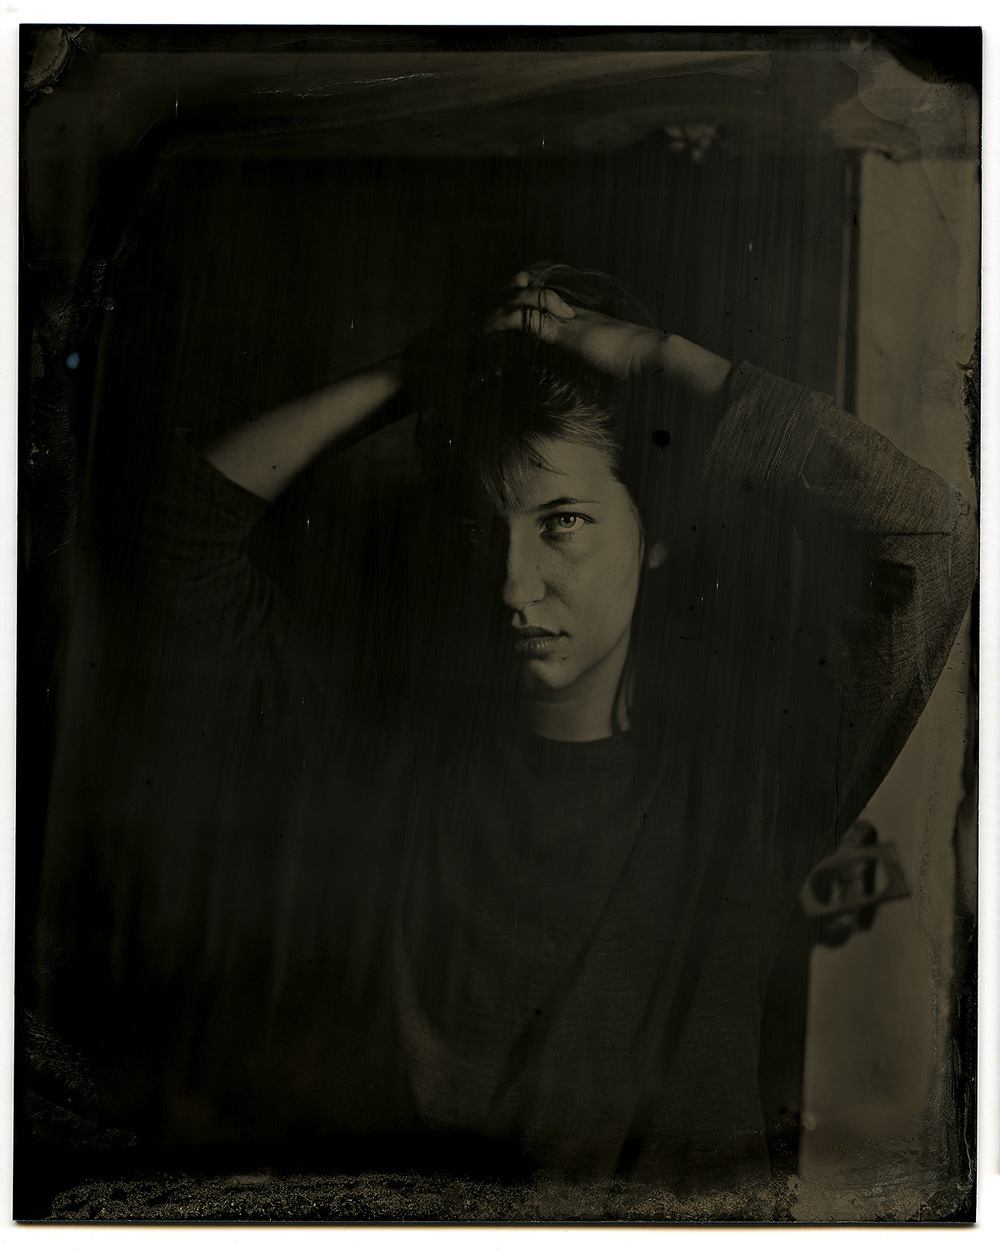 Brian Garbrecht - Taliana Katz of And The Kids. Chicago, IL. 2017. Tintype